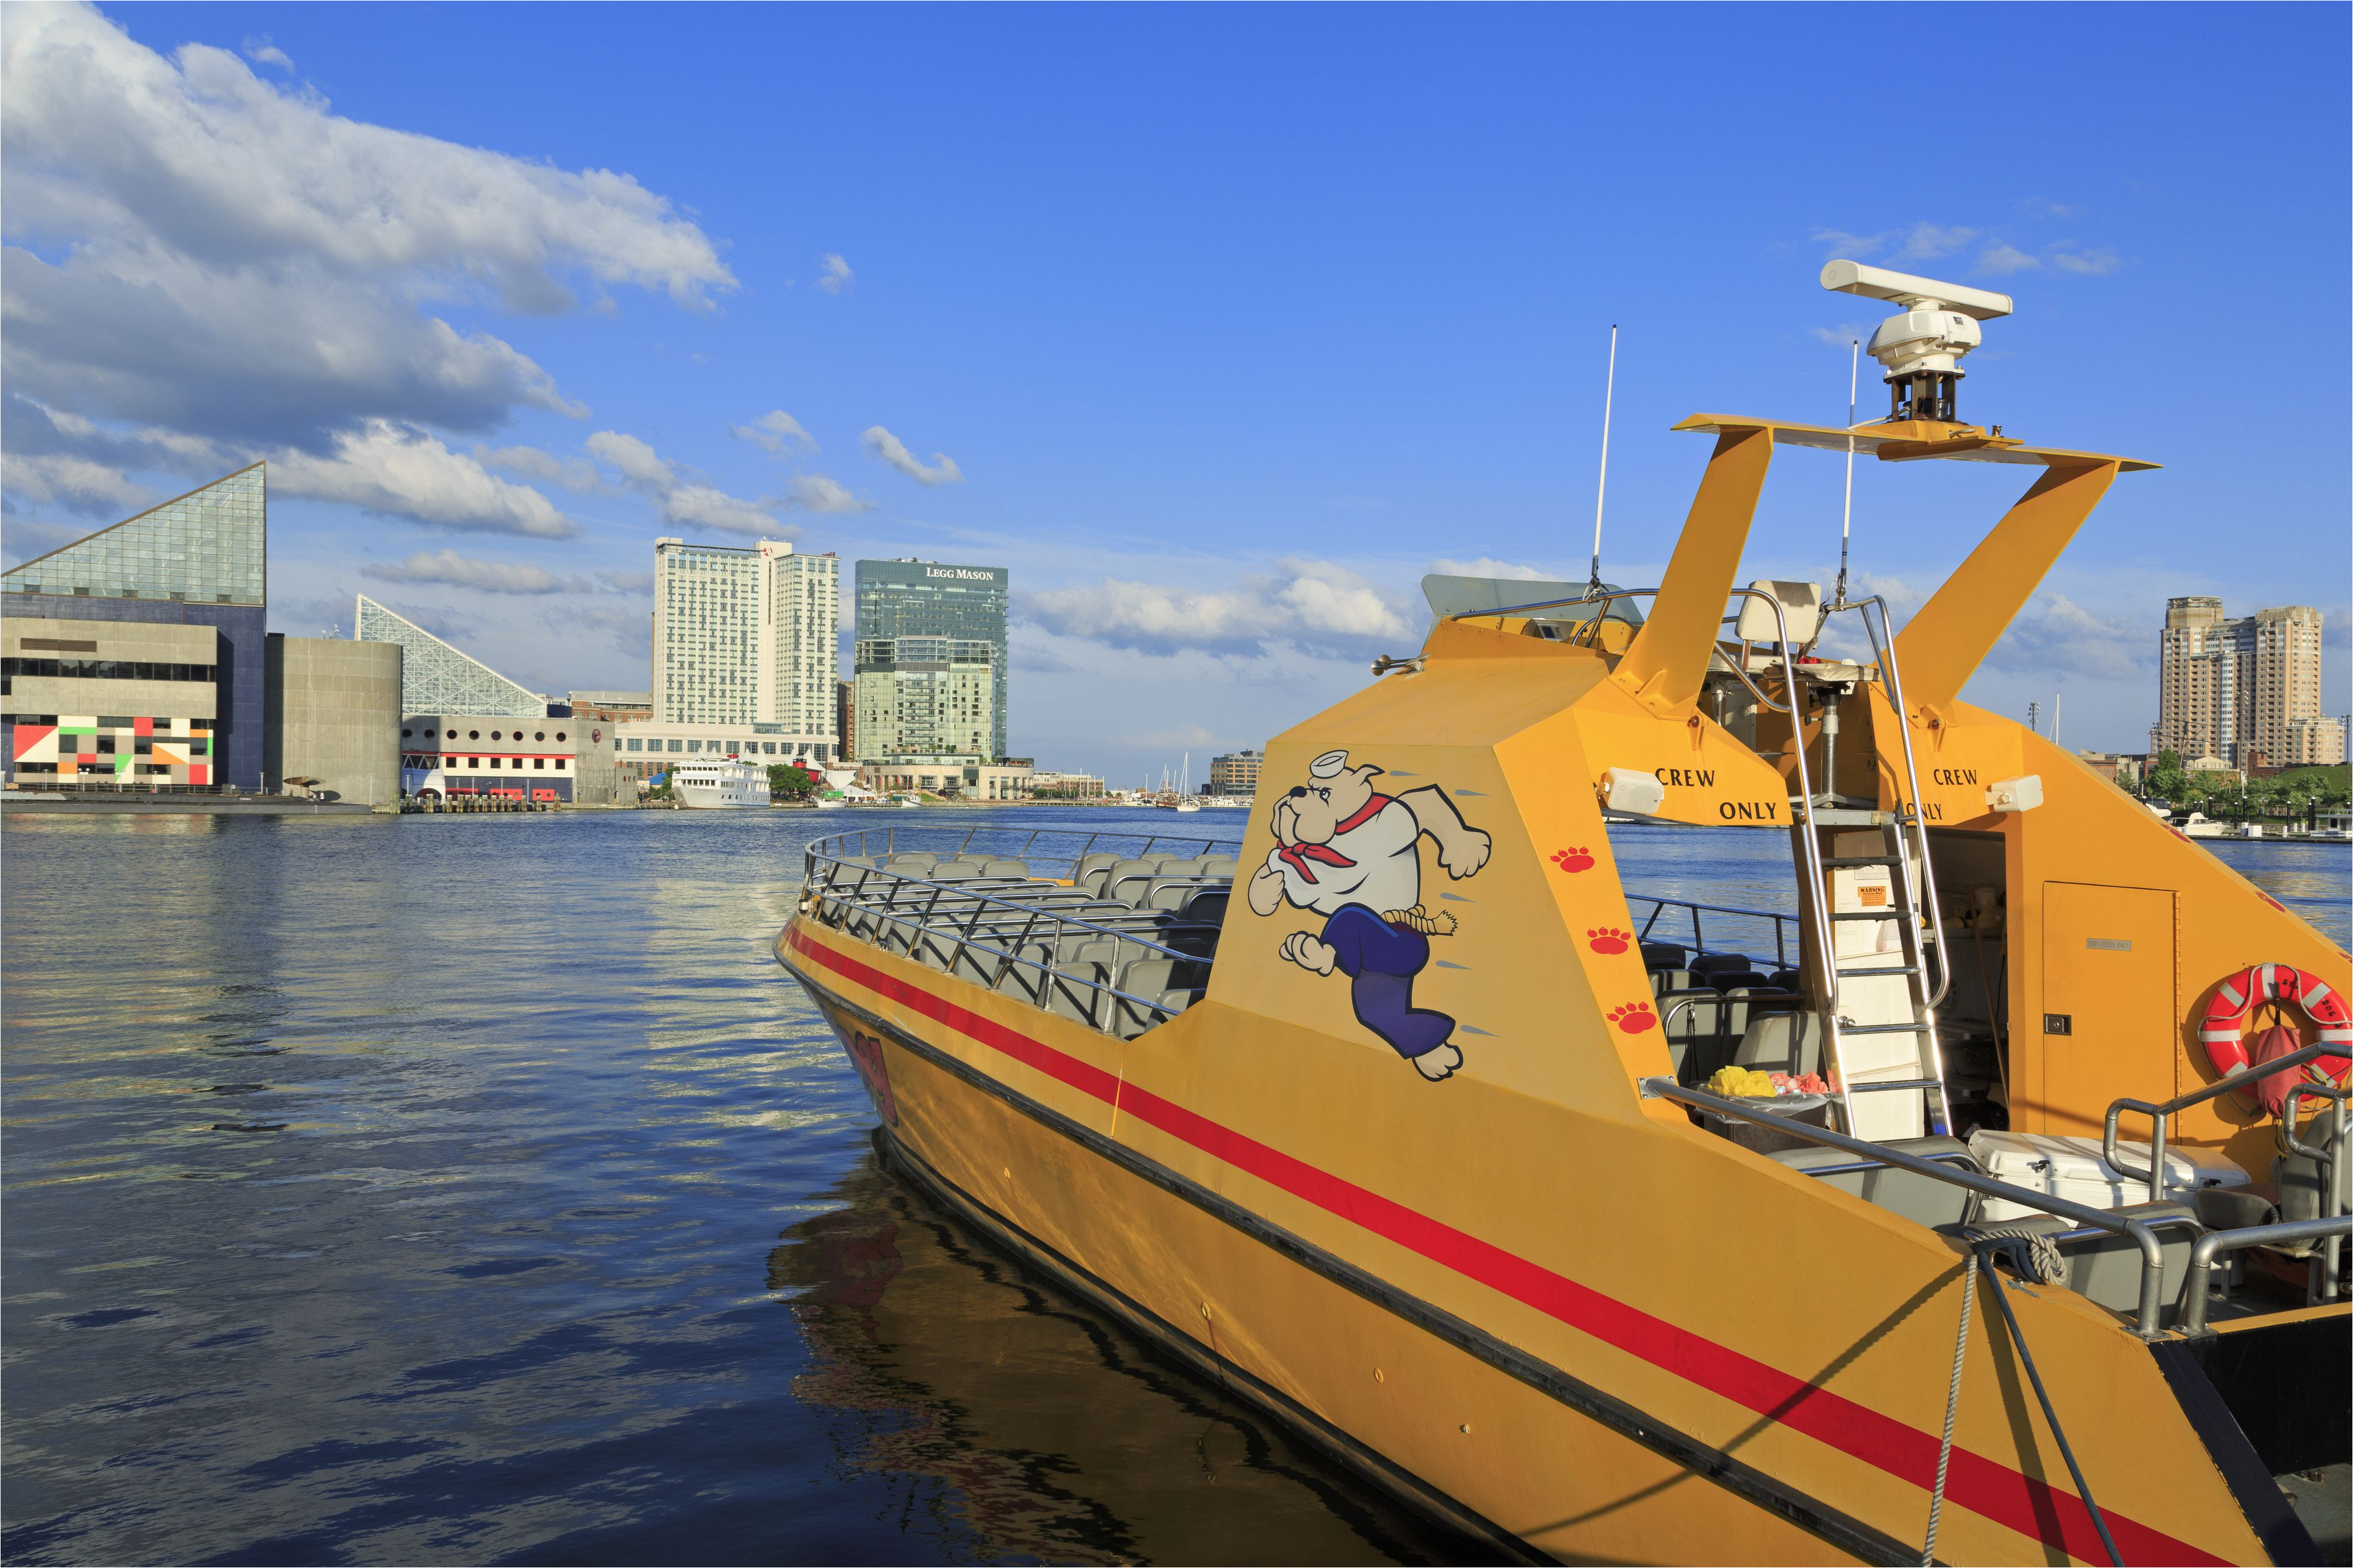 tour boat in the inner harbor baltimore maryland